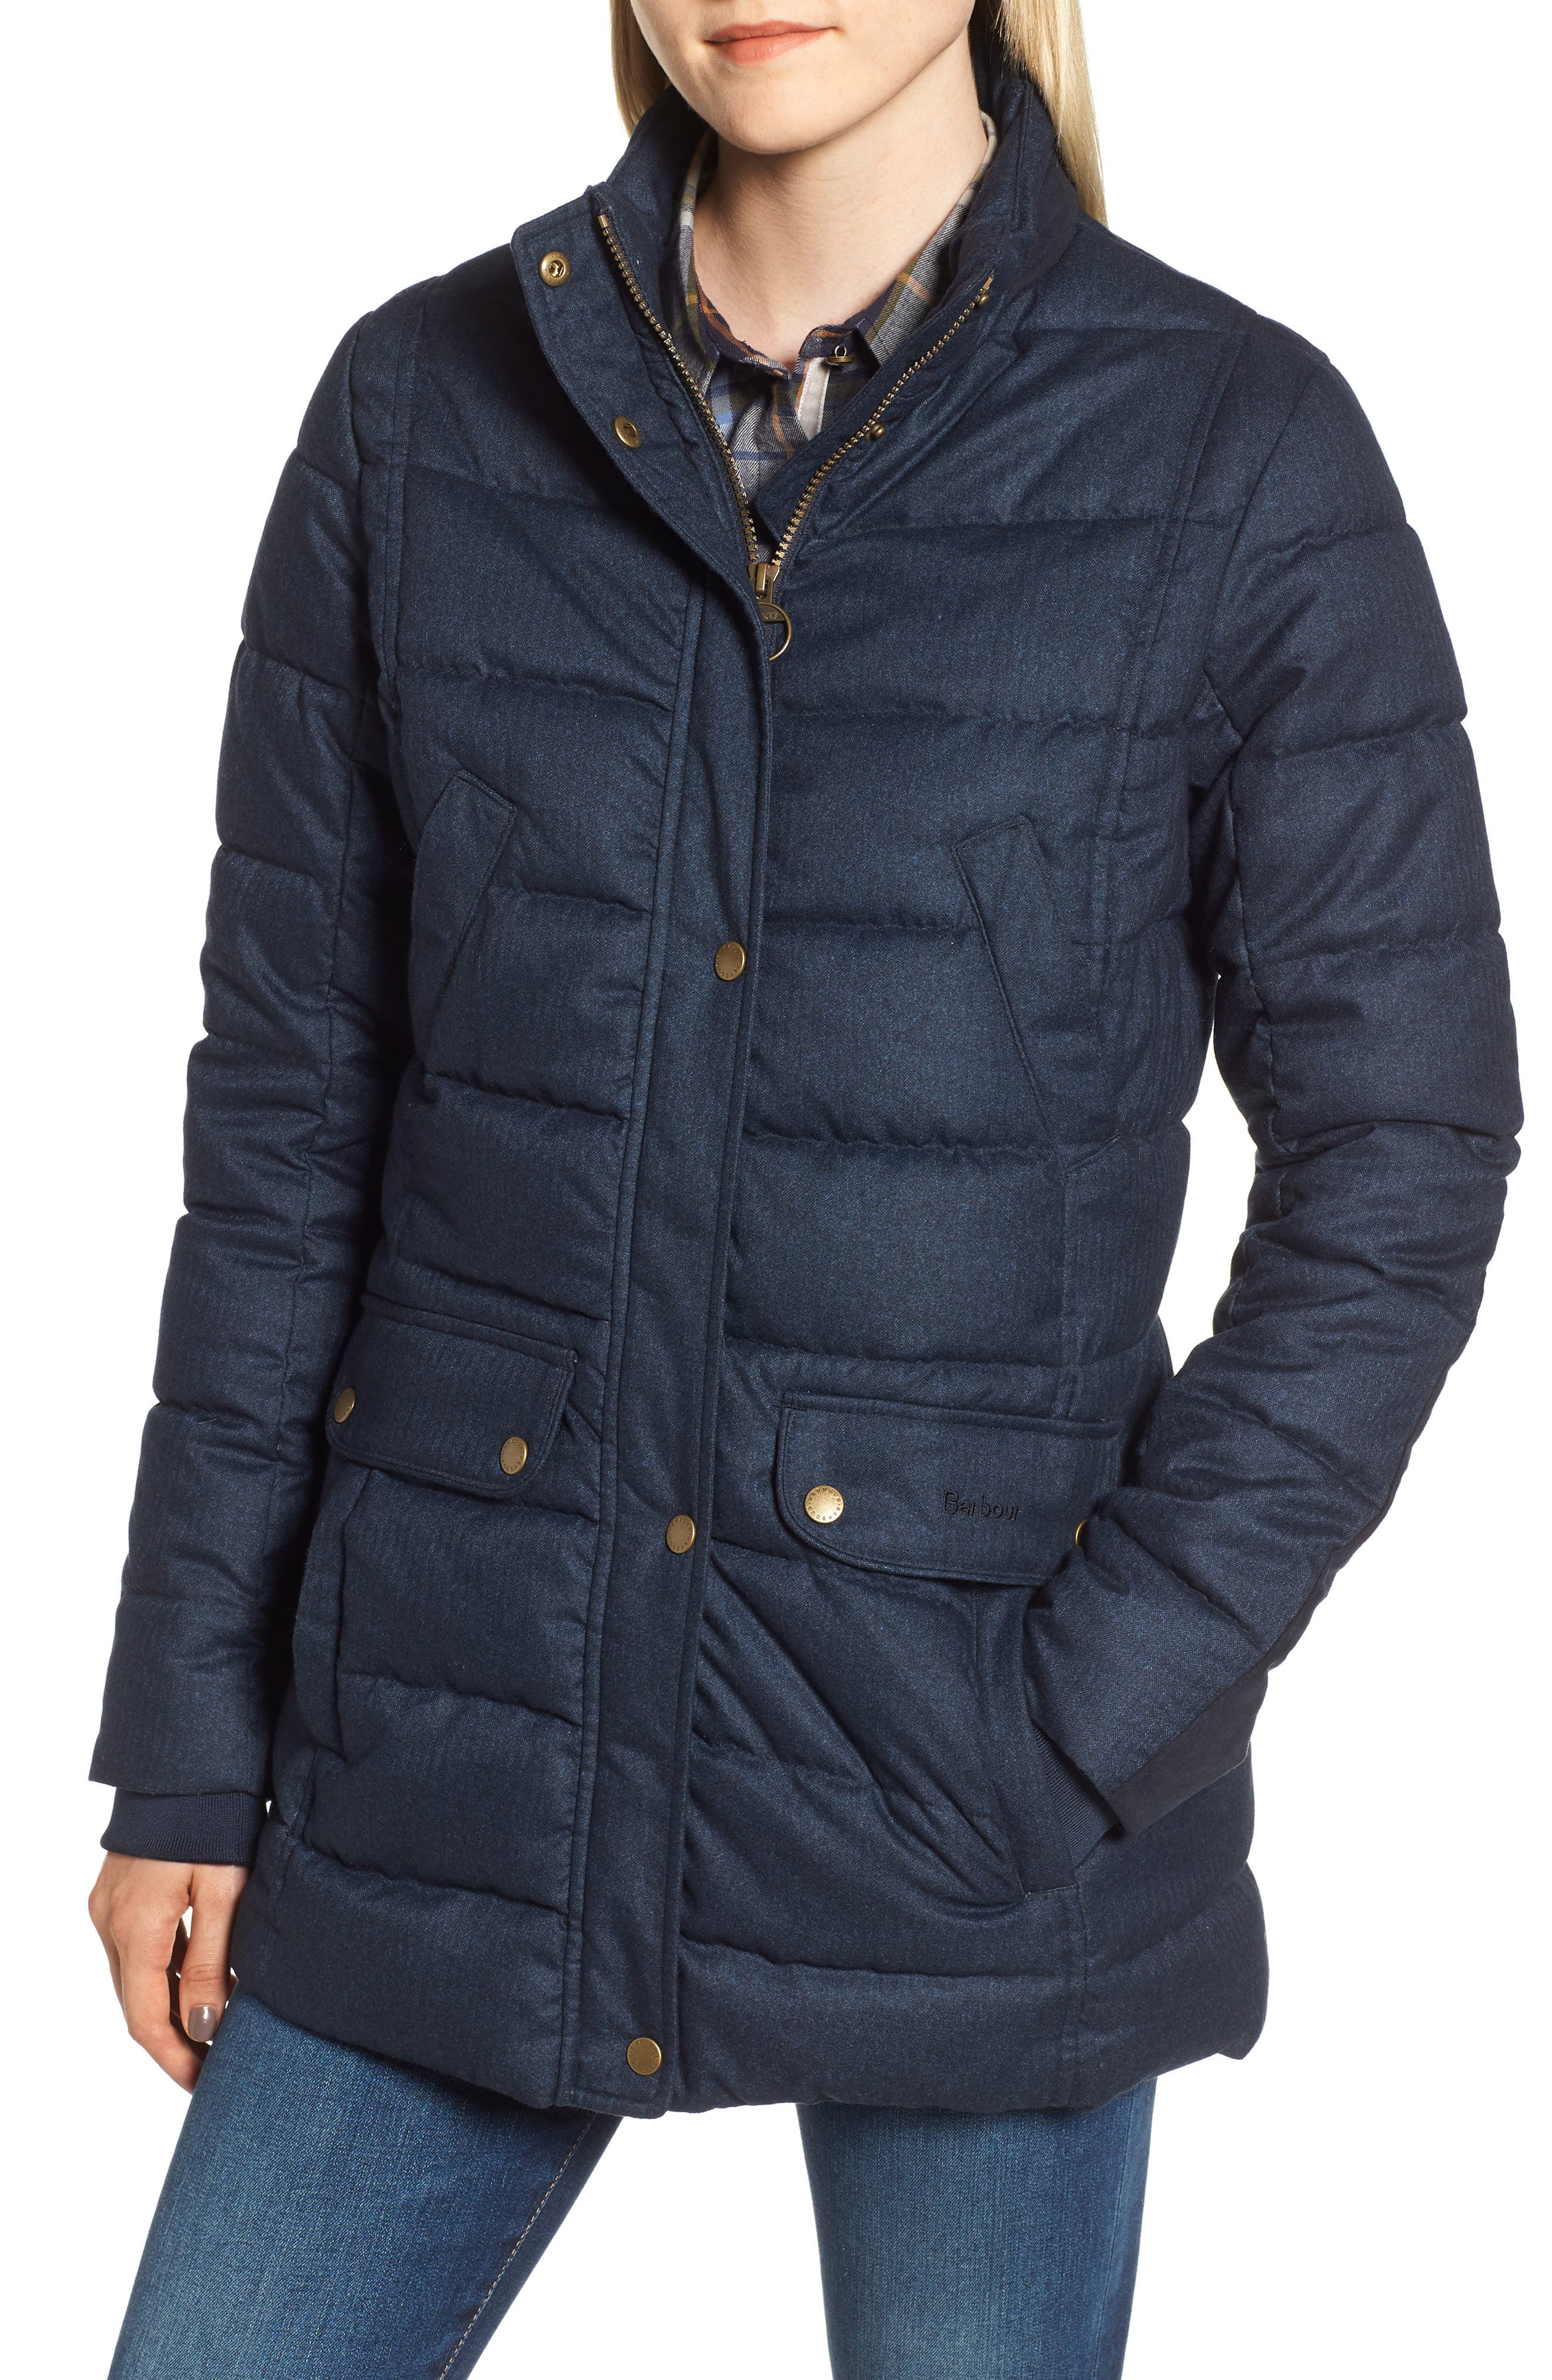 Barbour Goldfinch Quilted Jacket, US / 10 UK - Blue